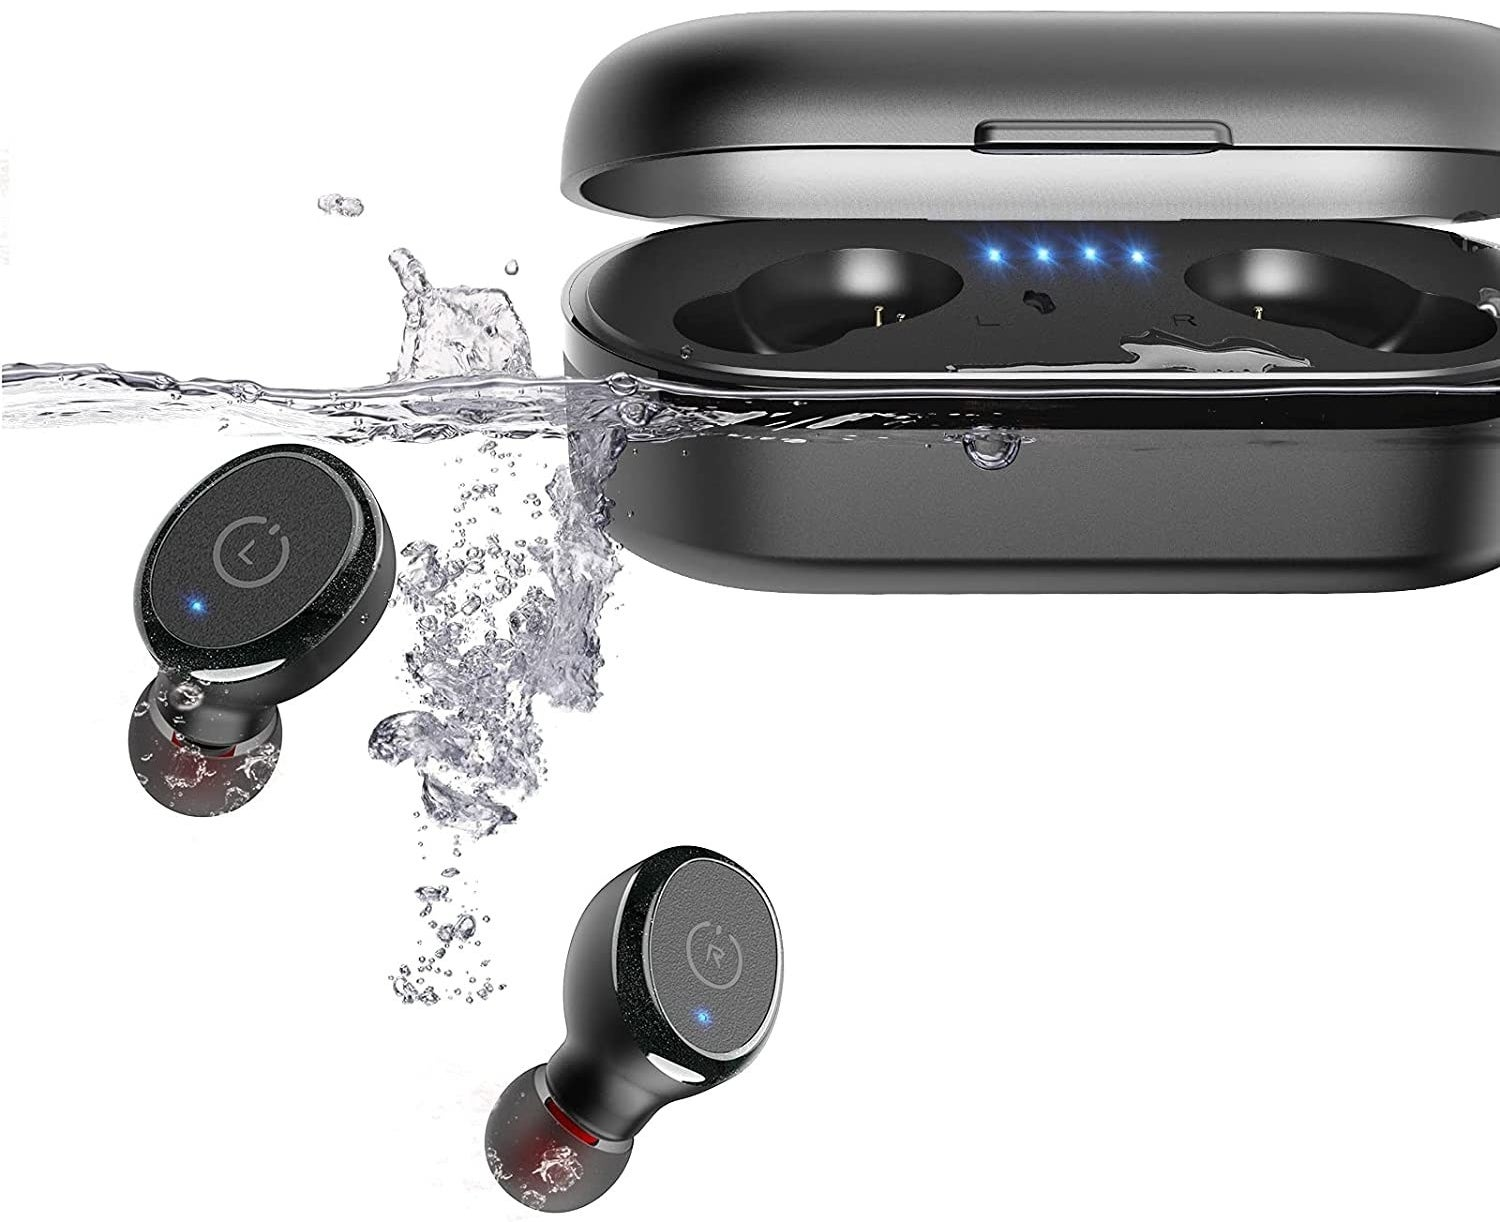 the earbuds and their case in water